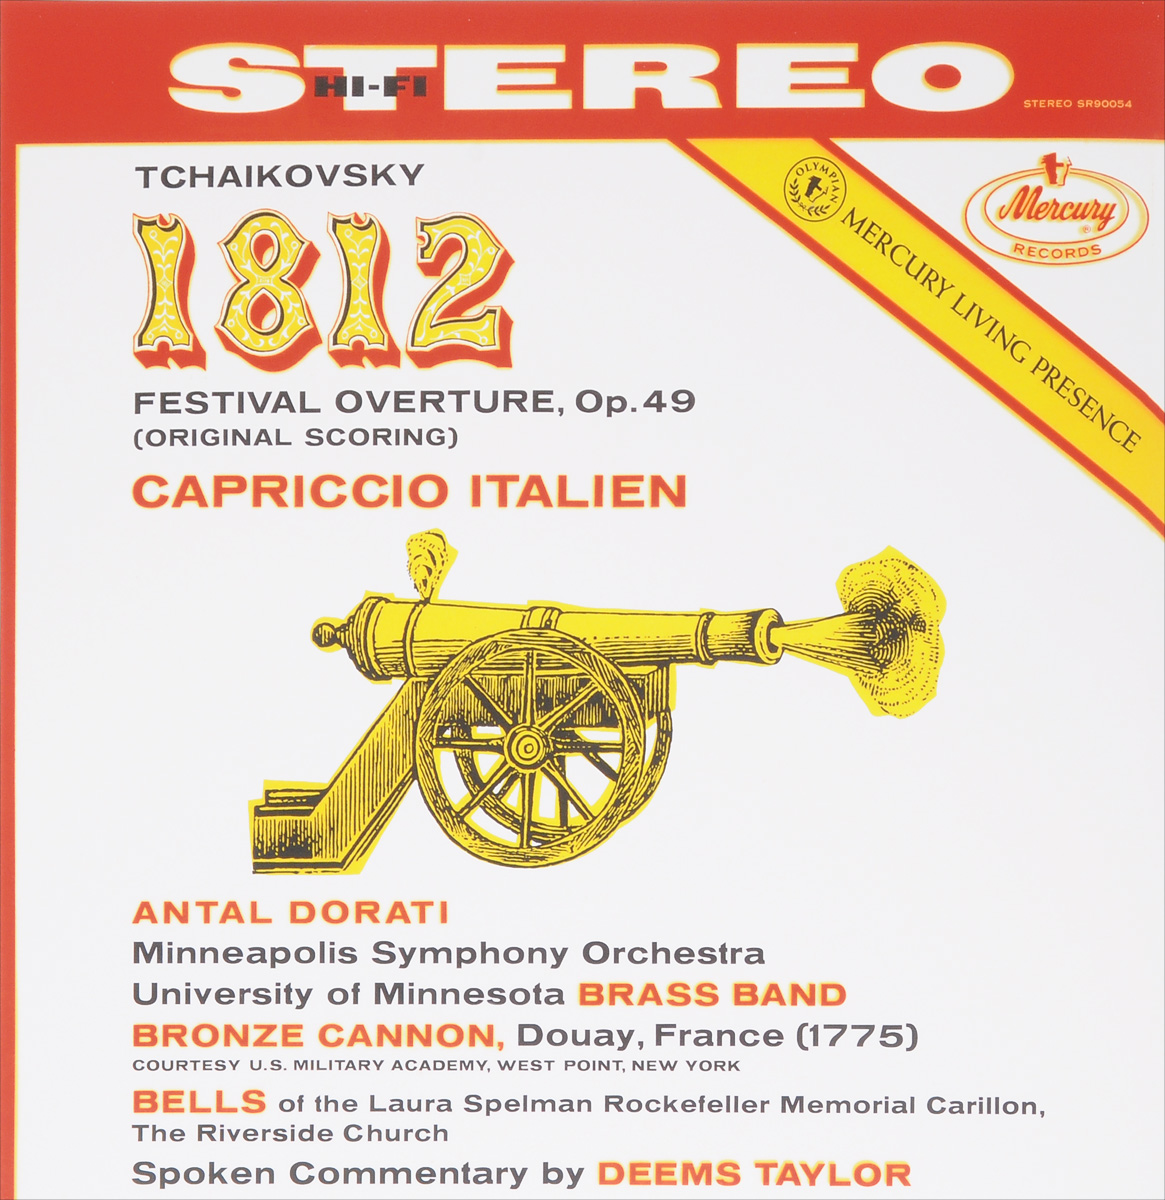 Антал Дорати,Minneapolis Symphony Orchestra,University Of Minnesota Brass Band Bronze Cannon,Laura Spelman Rockefeller Memorial Carillon, The Riverside Church Antal Dorati. Tchaikovsky. 1812. Festival Overture, Op. 49 / Capriccio Italien